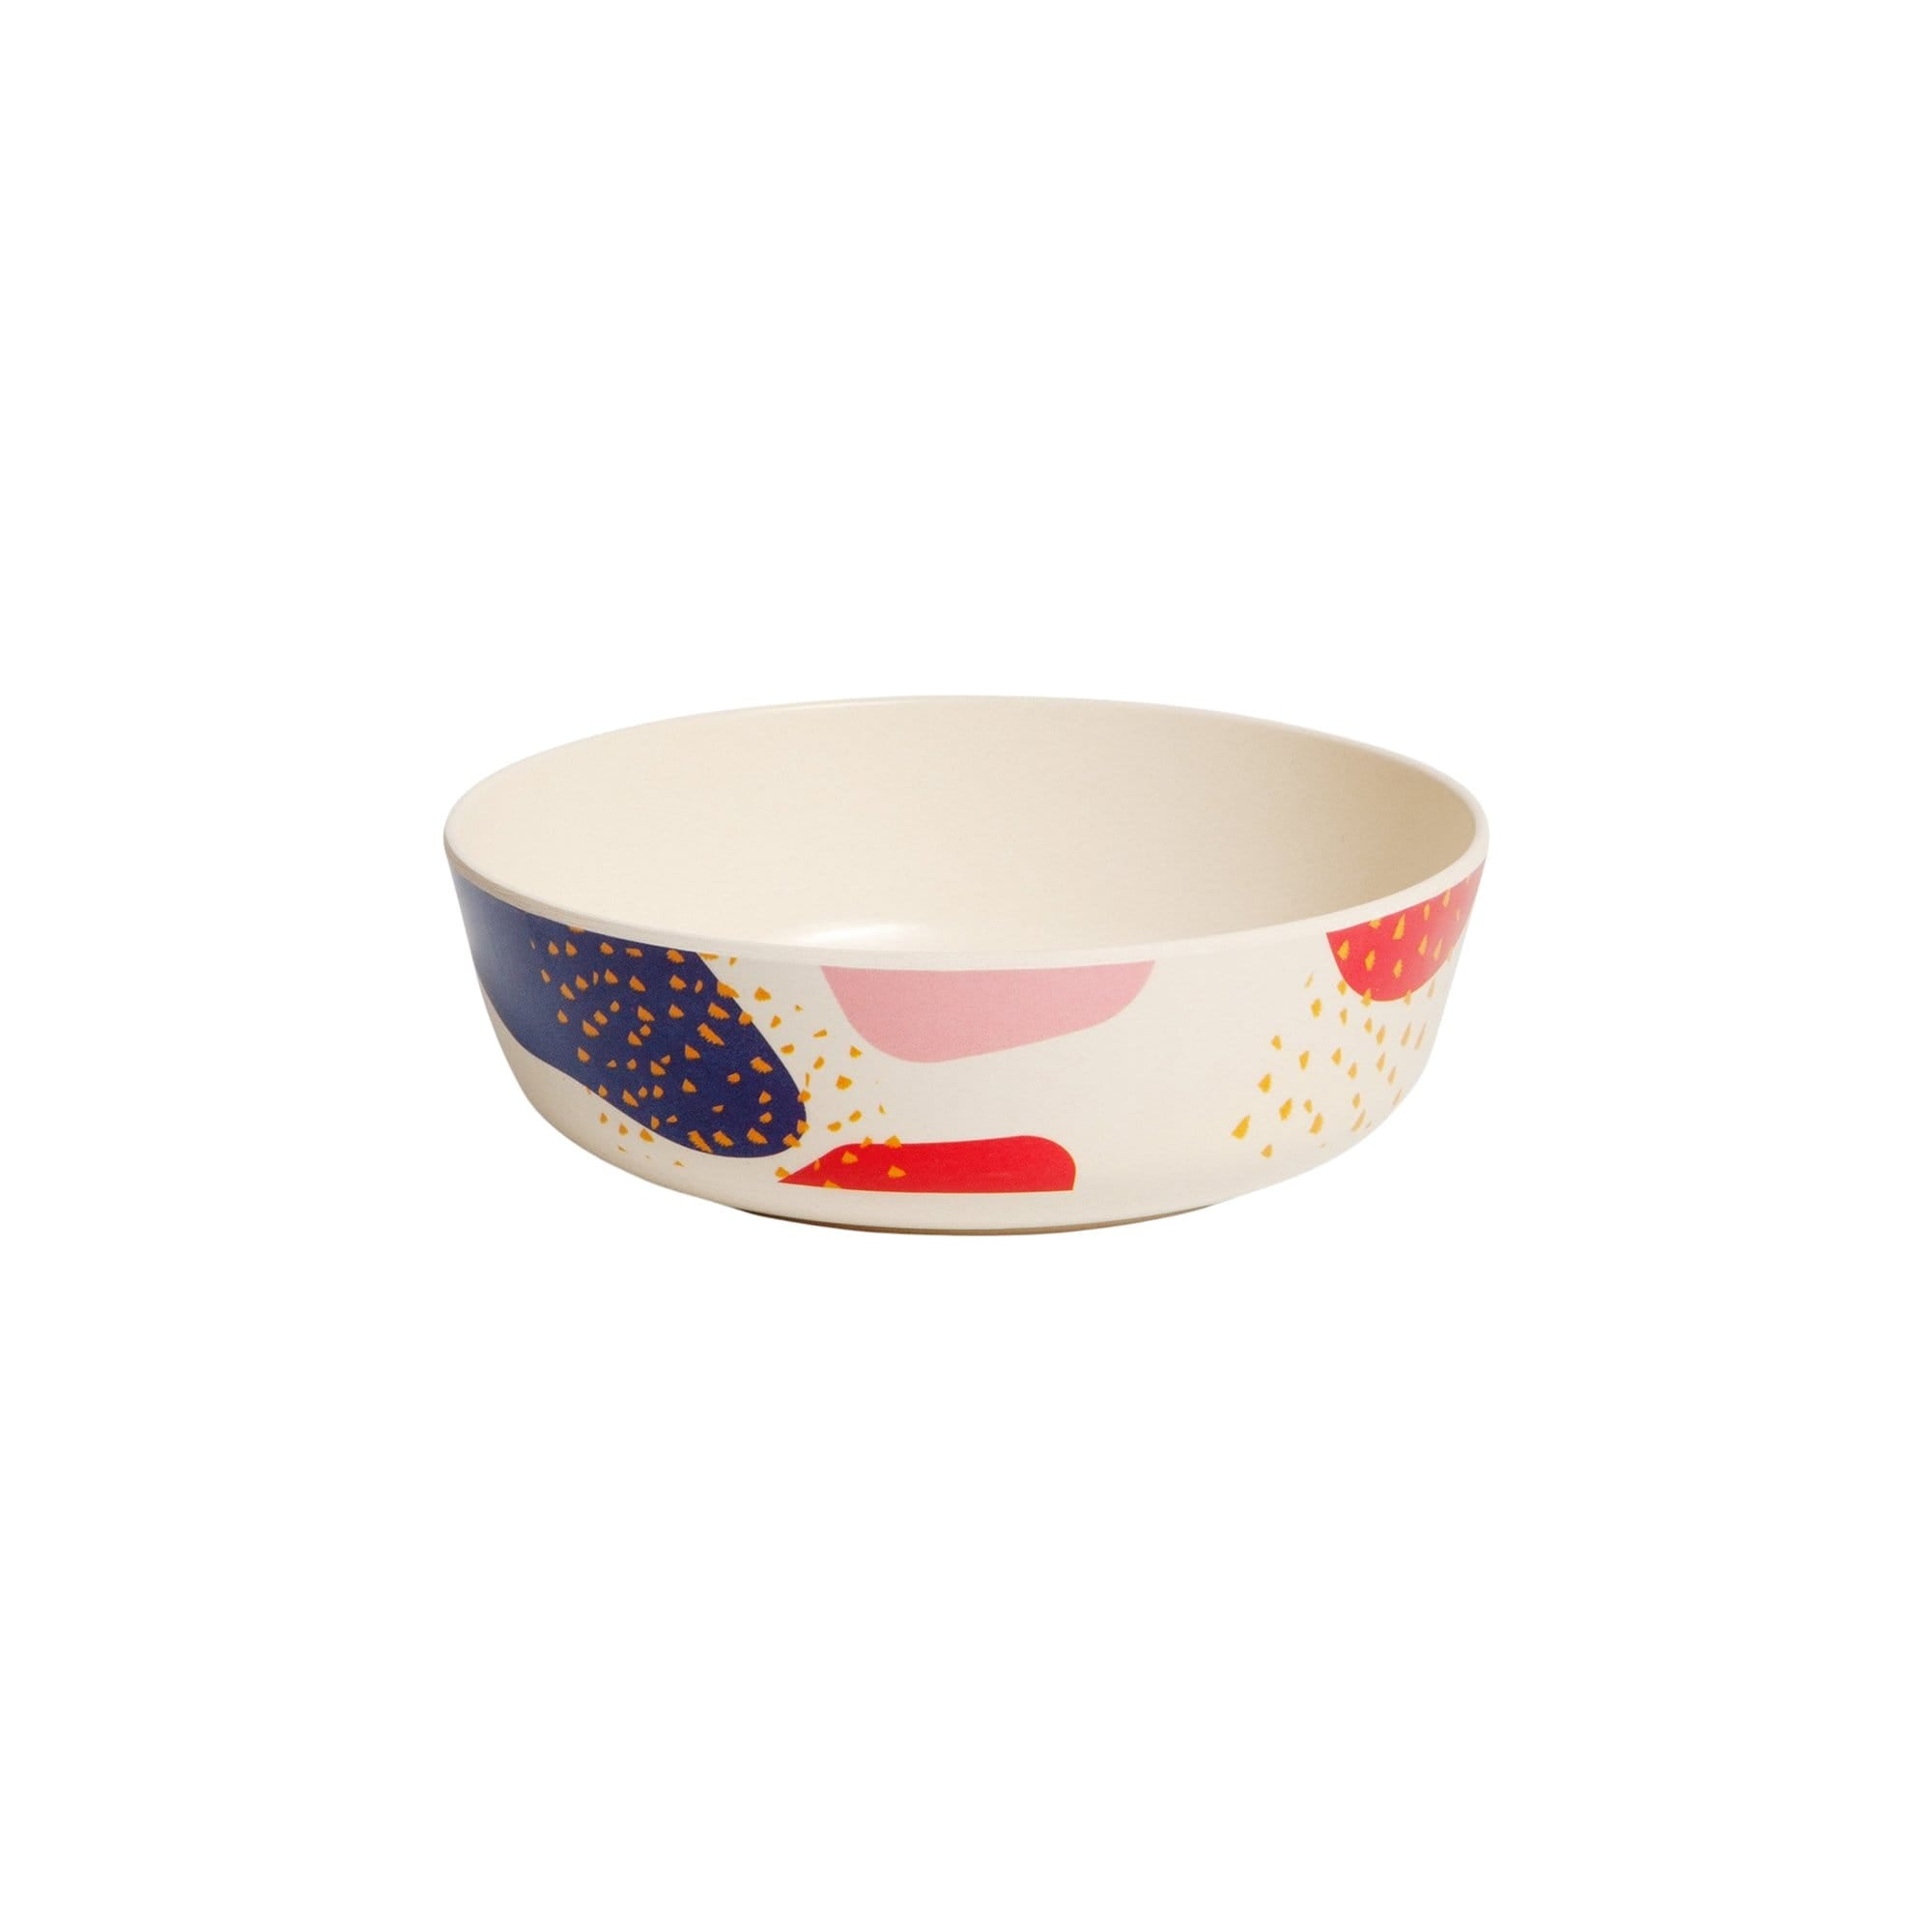 Bamboo Bowl Set in Dots and Marks